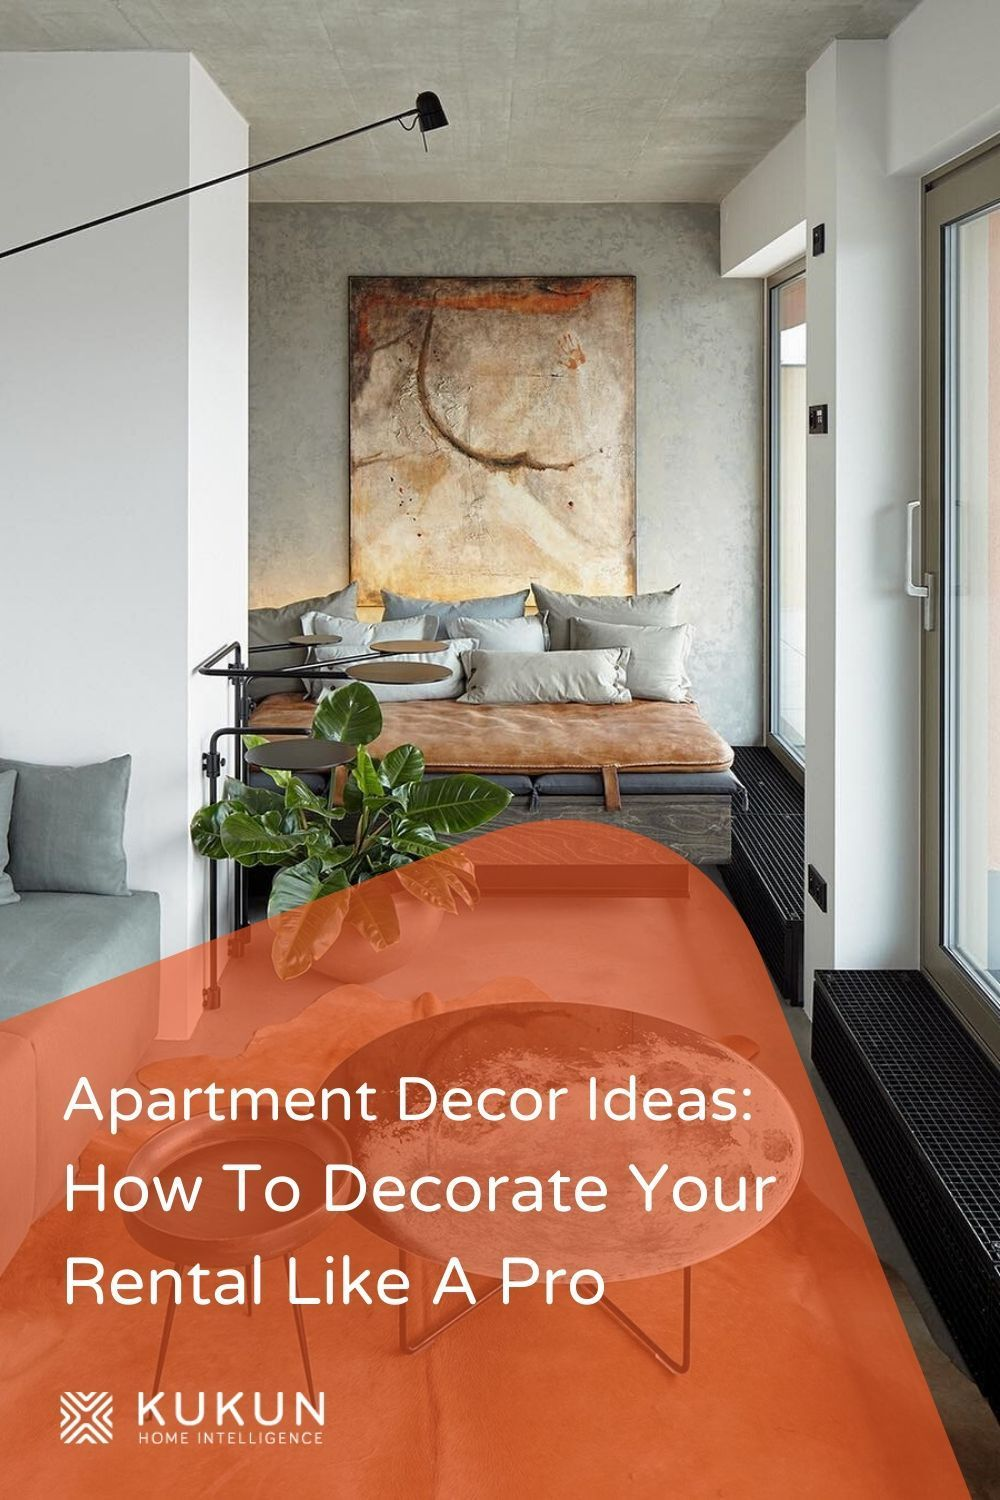 Decorating an apartment can be quite the design challenge. The good news is that we're here to offer you some affordable apartment decor ideas to give your rental a fresh new look that fits your tastes without much effort. #RentalDecor #ApartmentDecor #DecorIdeas